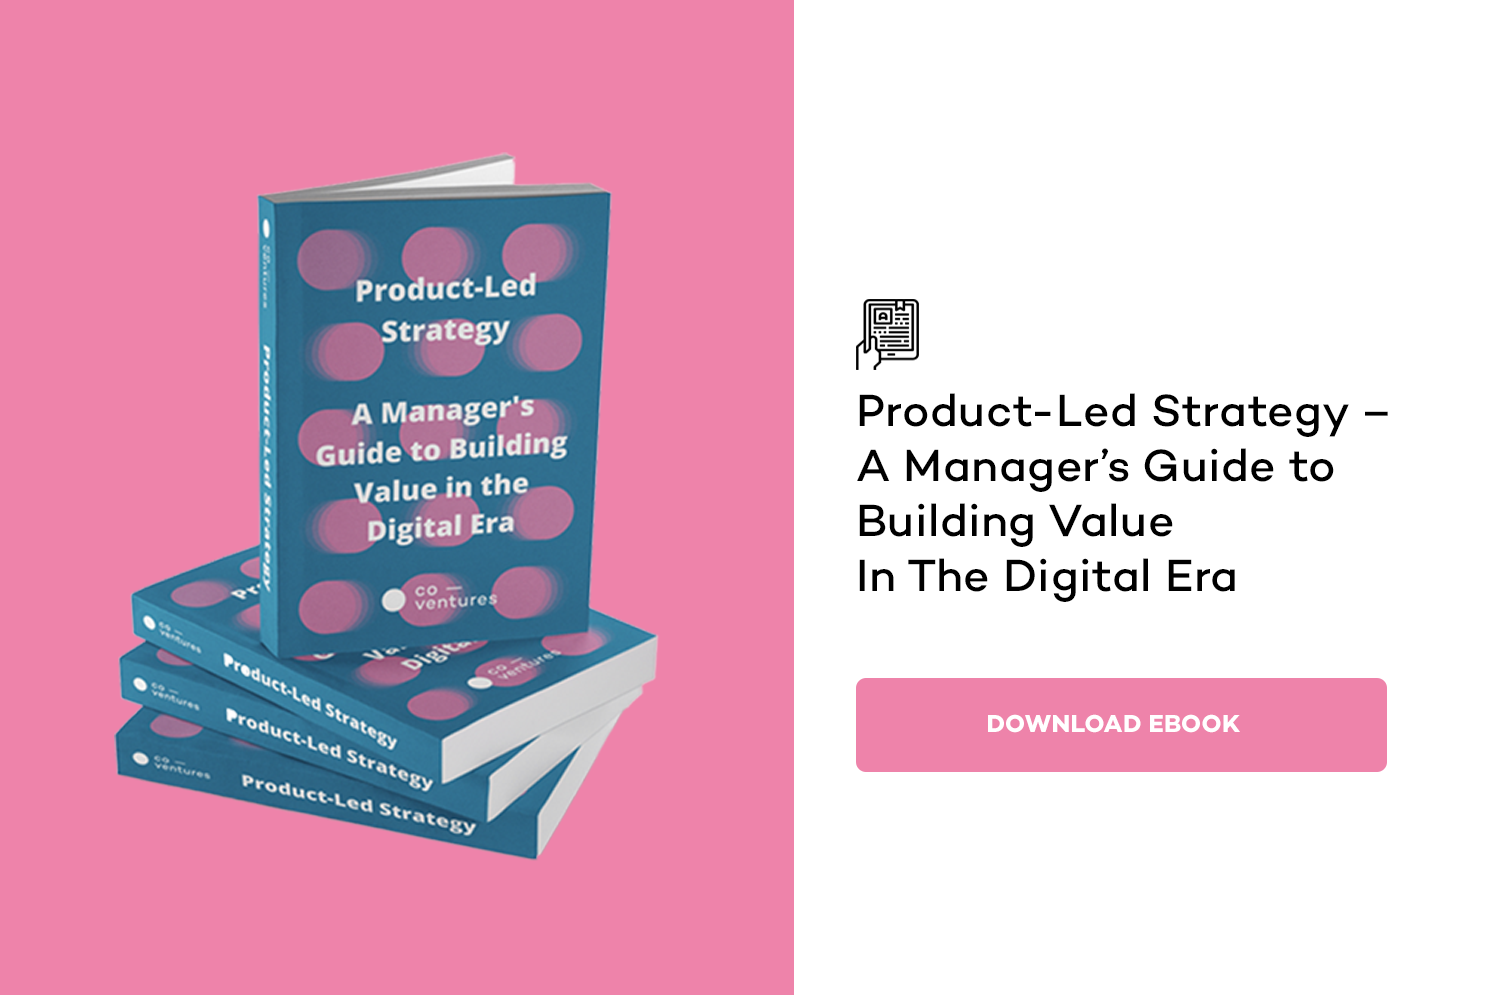 Product-Led Strategy – A Manager's Guide to Building Value in the Digital Era